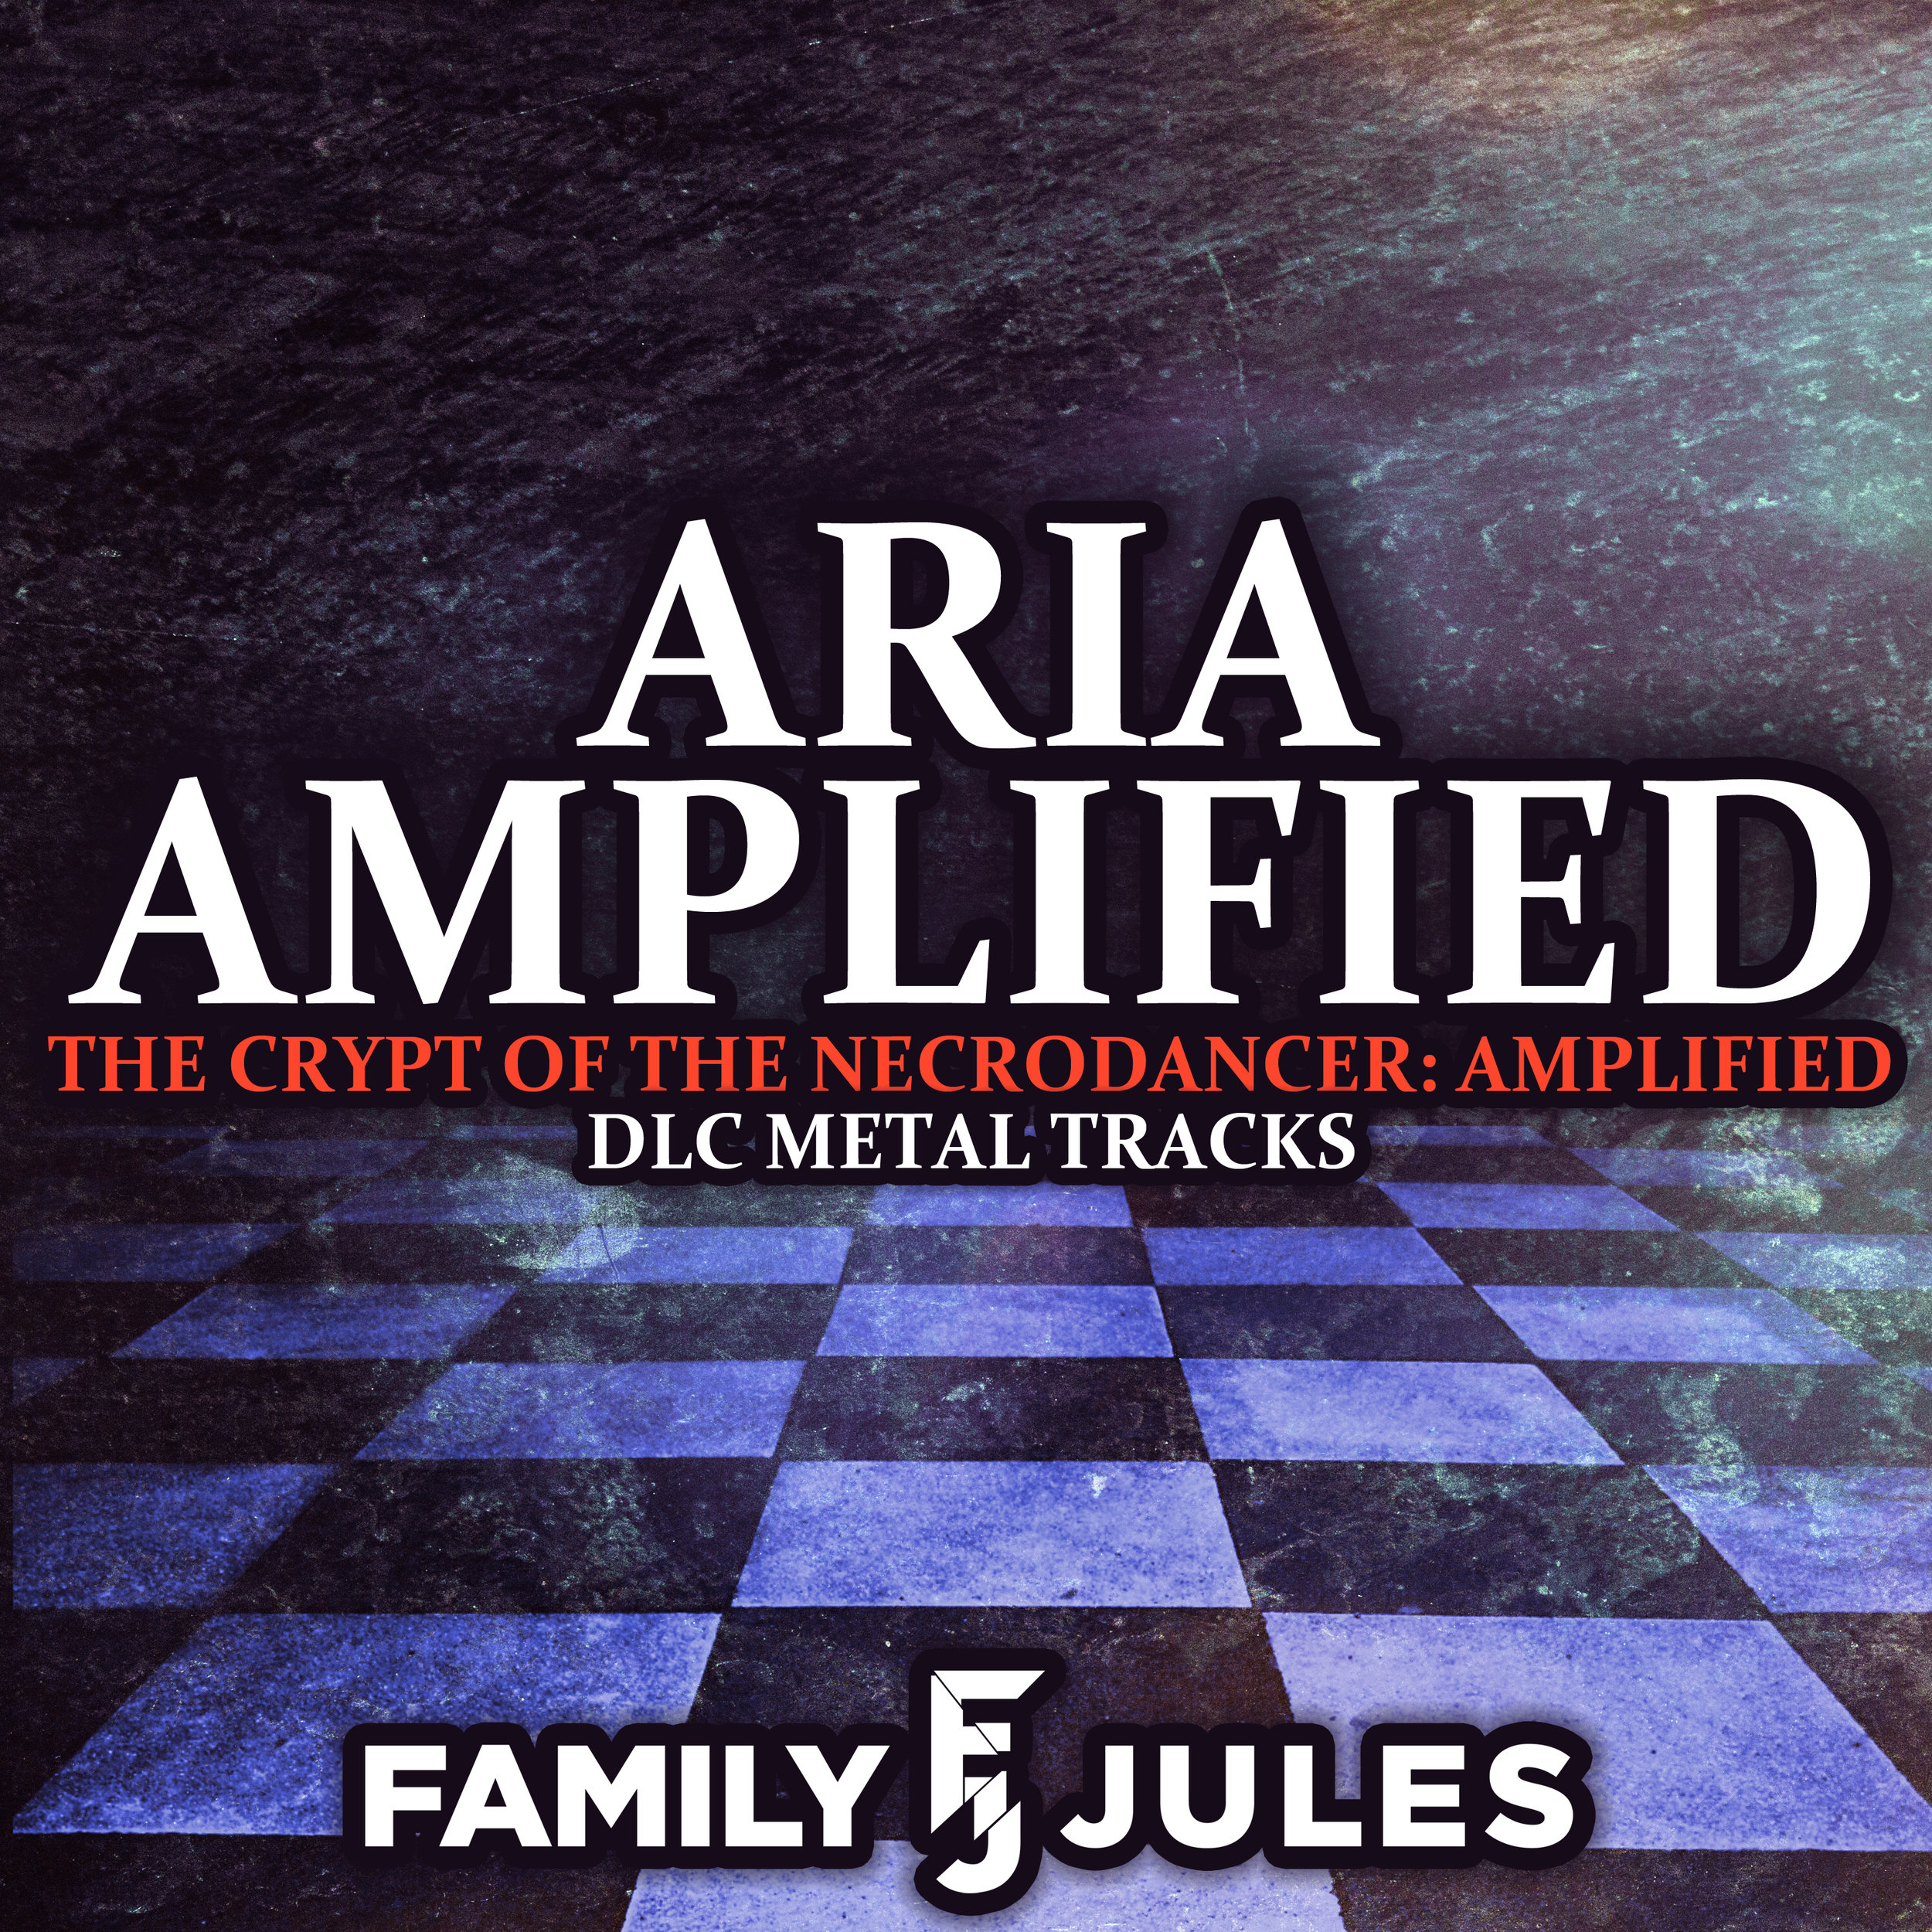 ariaamplified